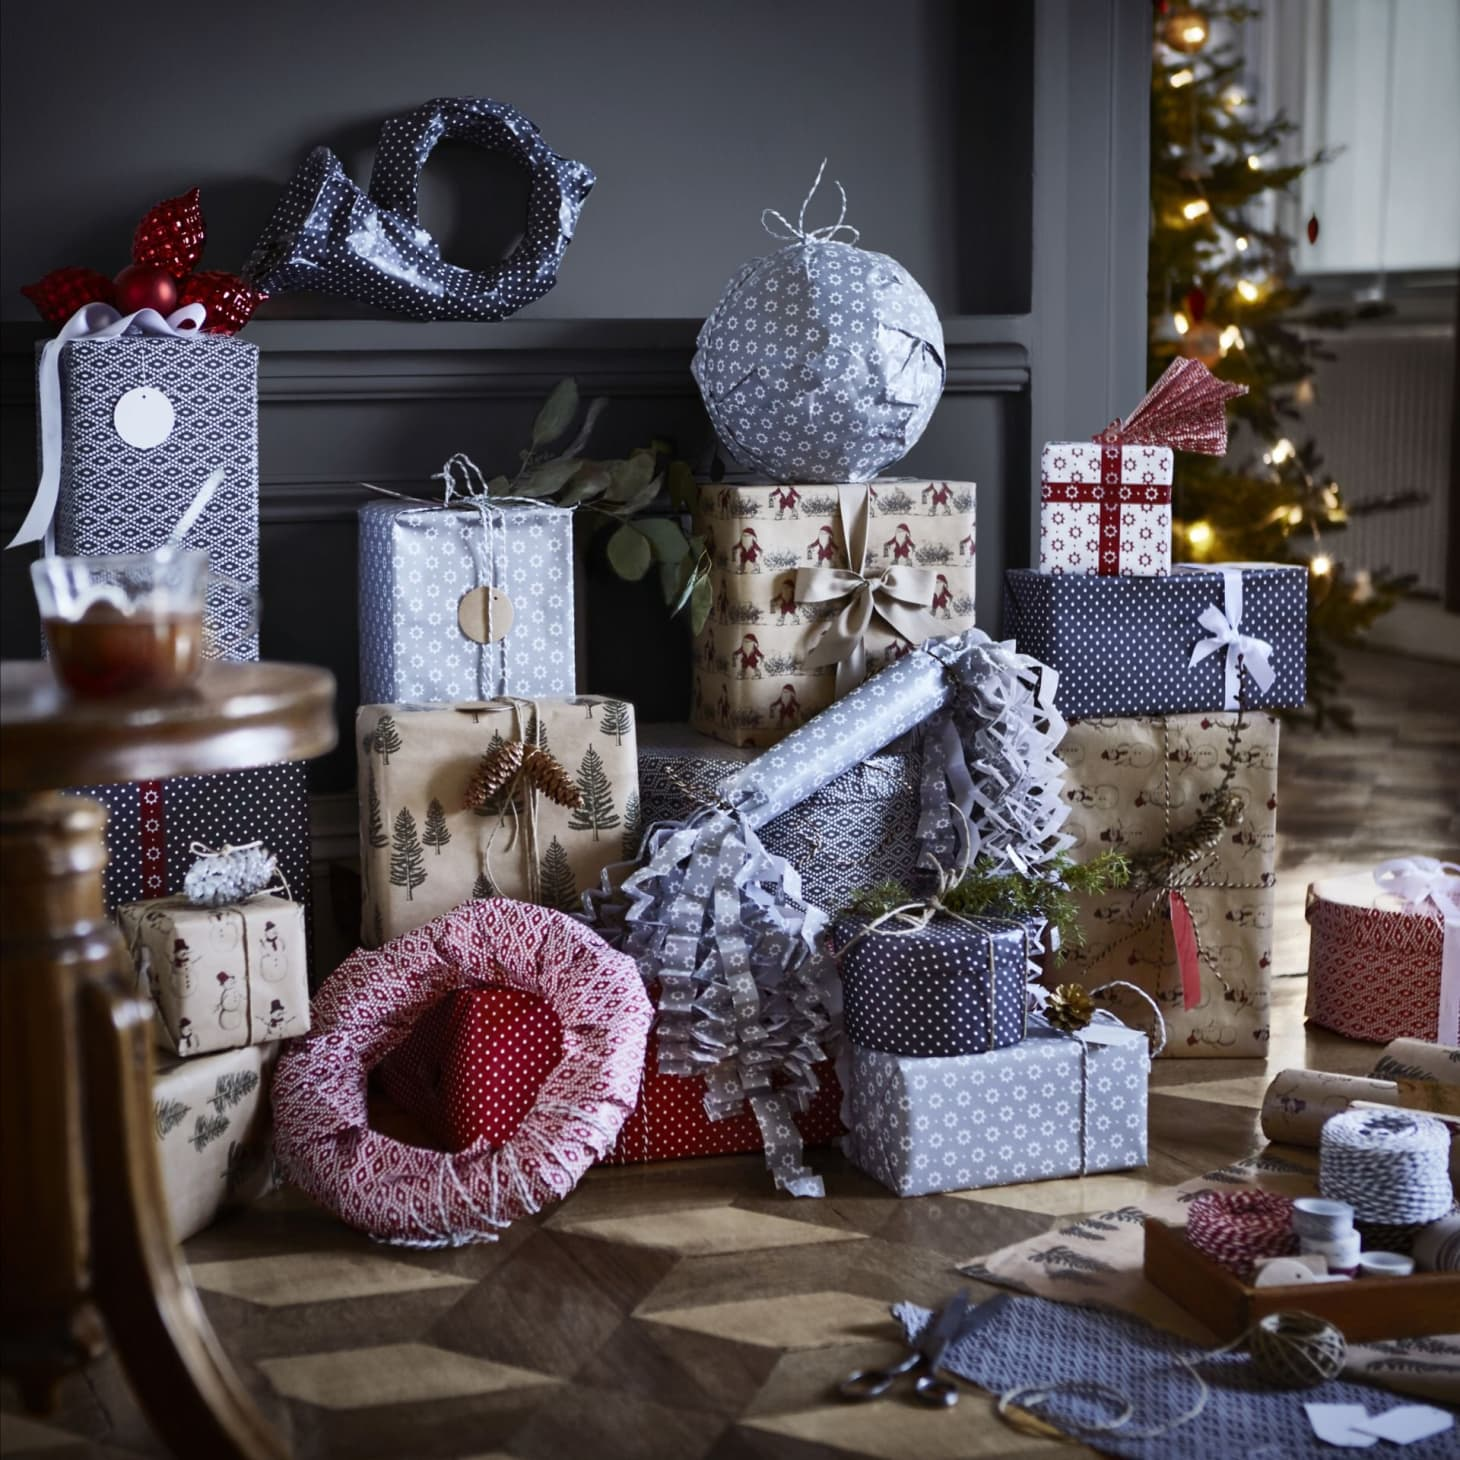 11 Decorating Ideas To Steal From The Scandinavians: 11 IKEA Holiday Decorating Ideas Worth Stealing